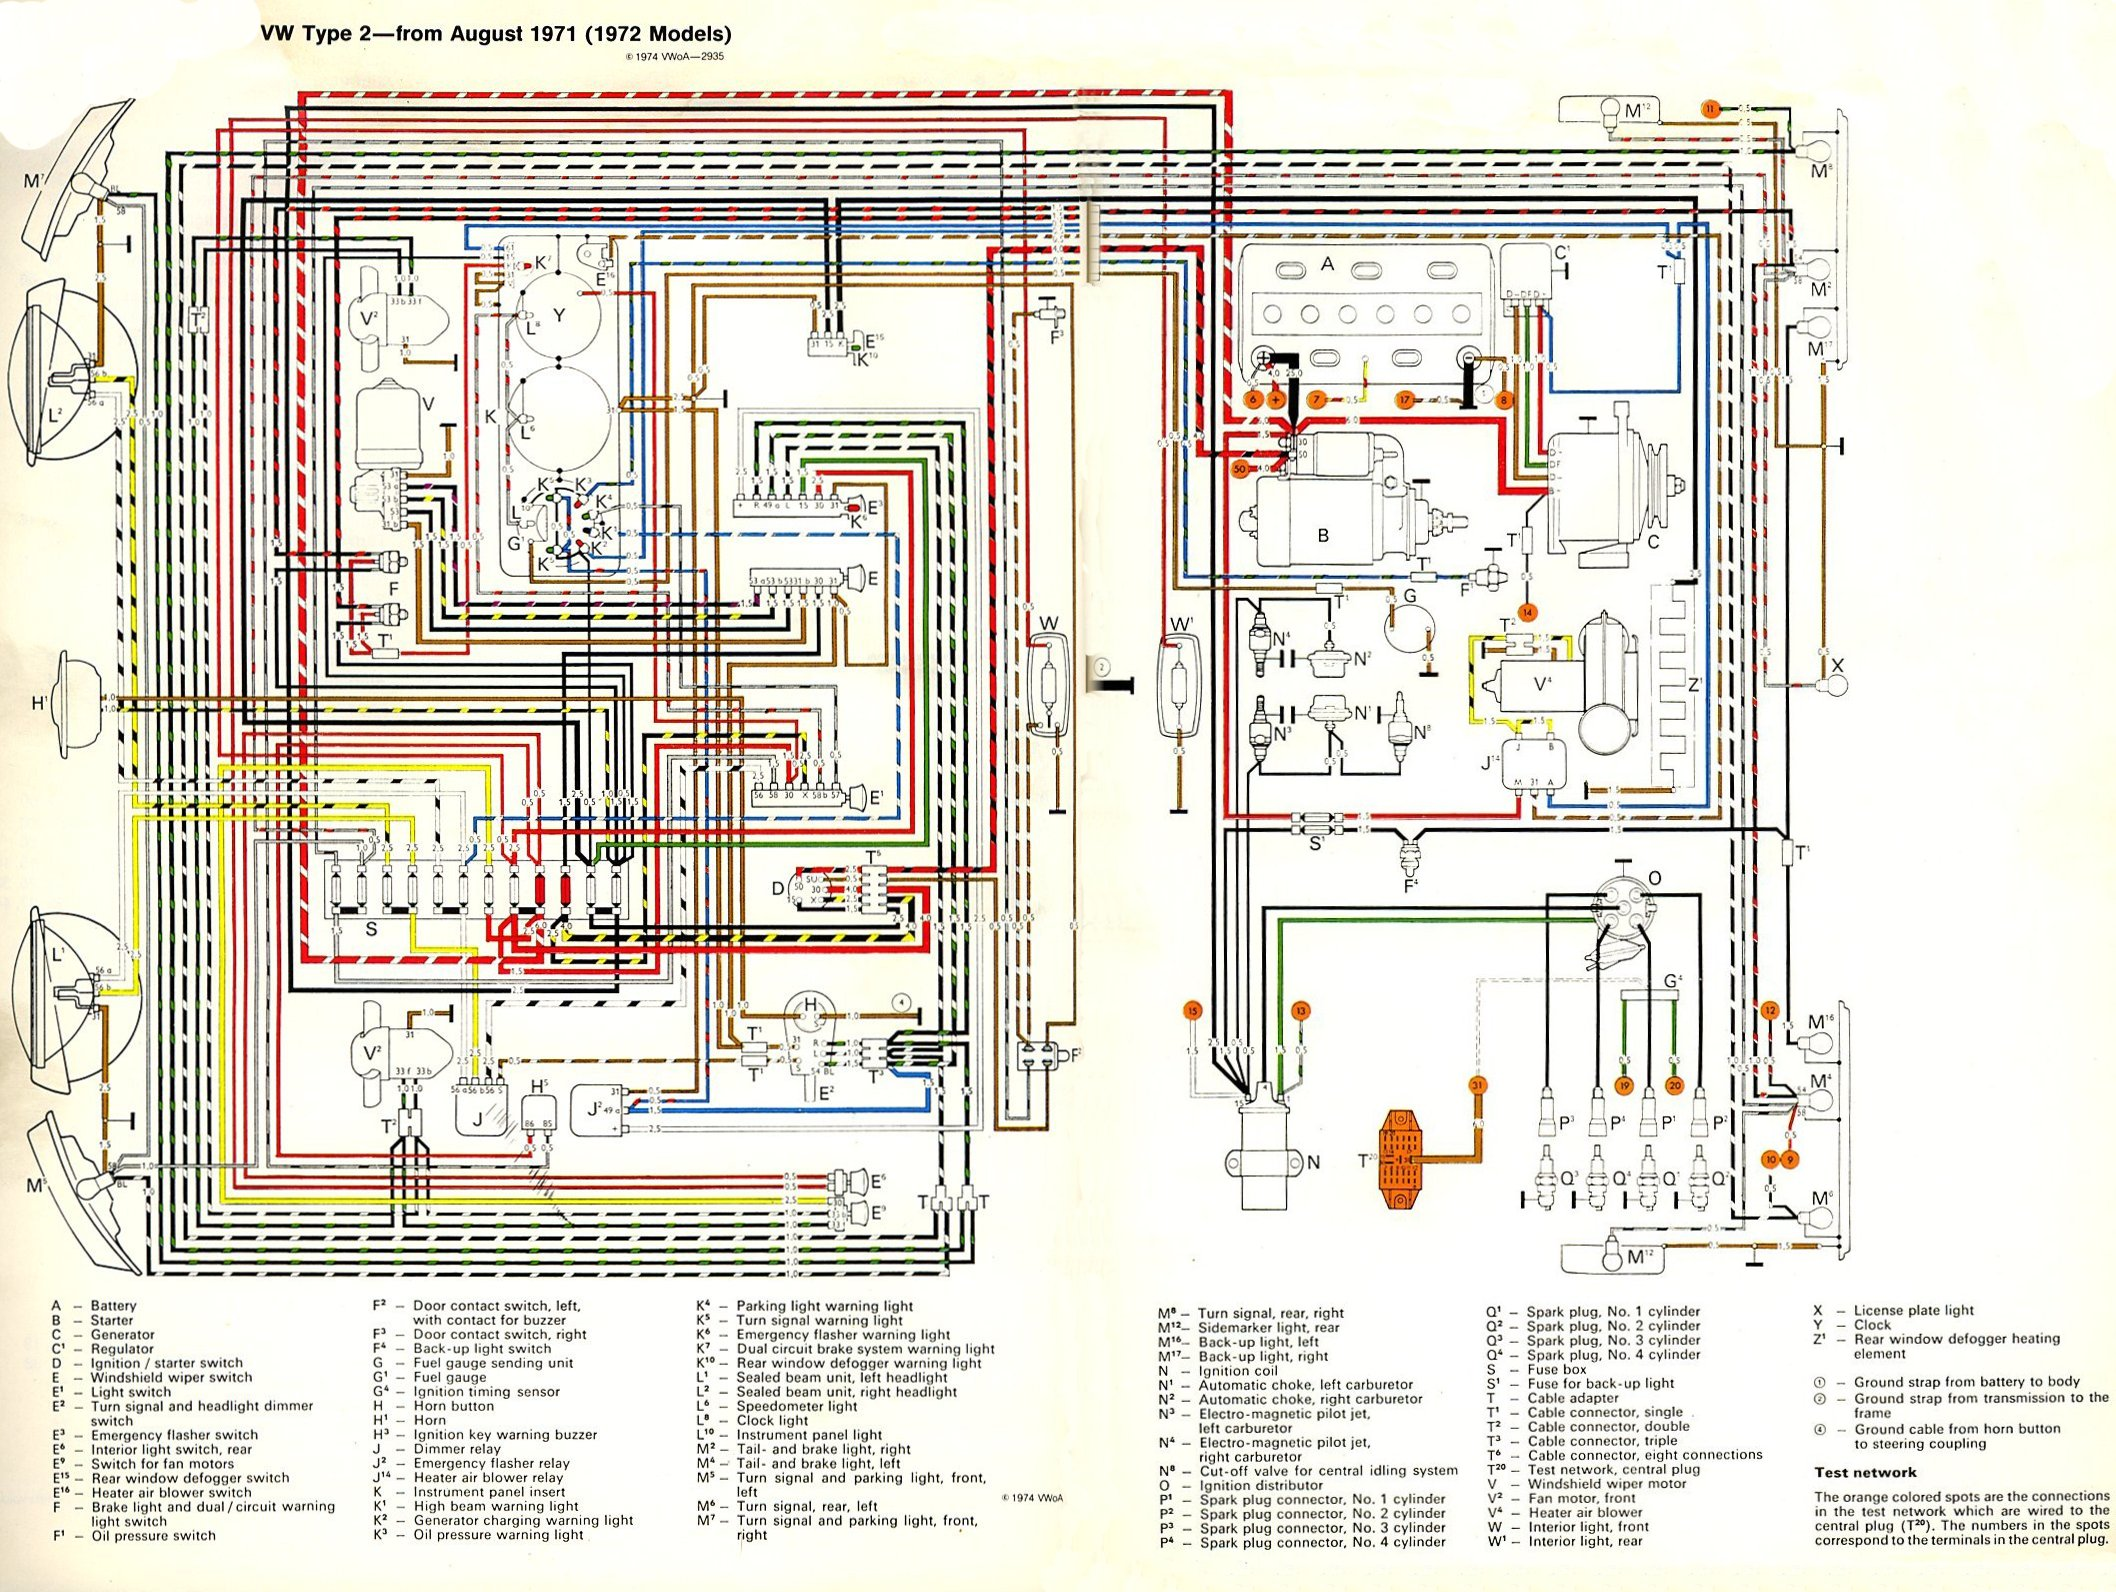 bus_1972_wiring 1972 corvette wiring diagram 1972 corvette ac wiring diagram Wiring Harness Diagram at gsmportal.co